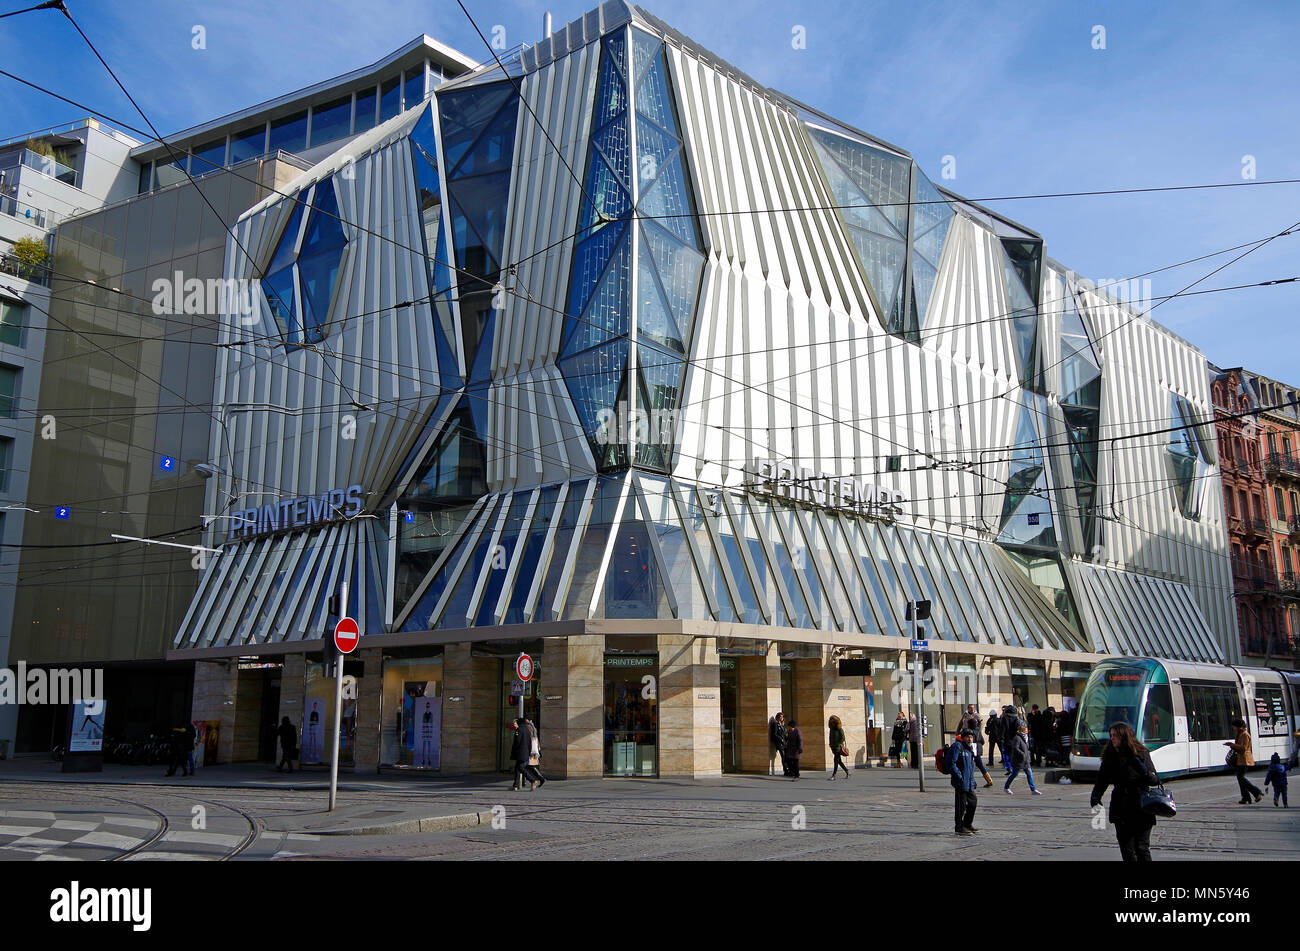 Dramatic architectural treatment of the exterior of the Printemps department store in Strasbourg, France - Stock Image